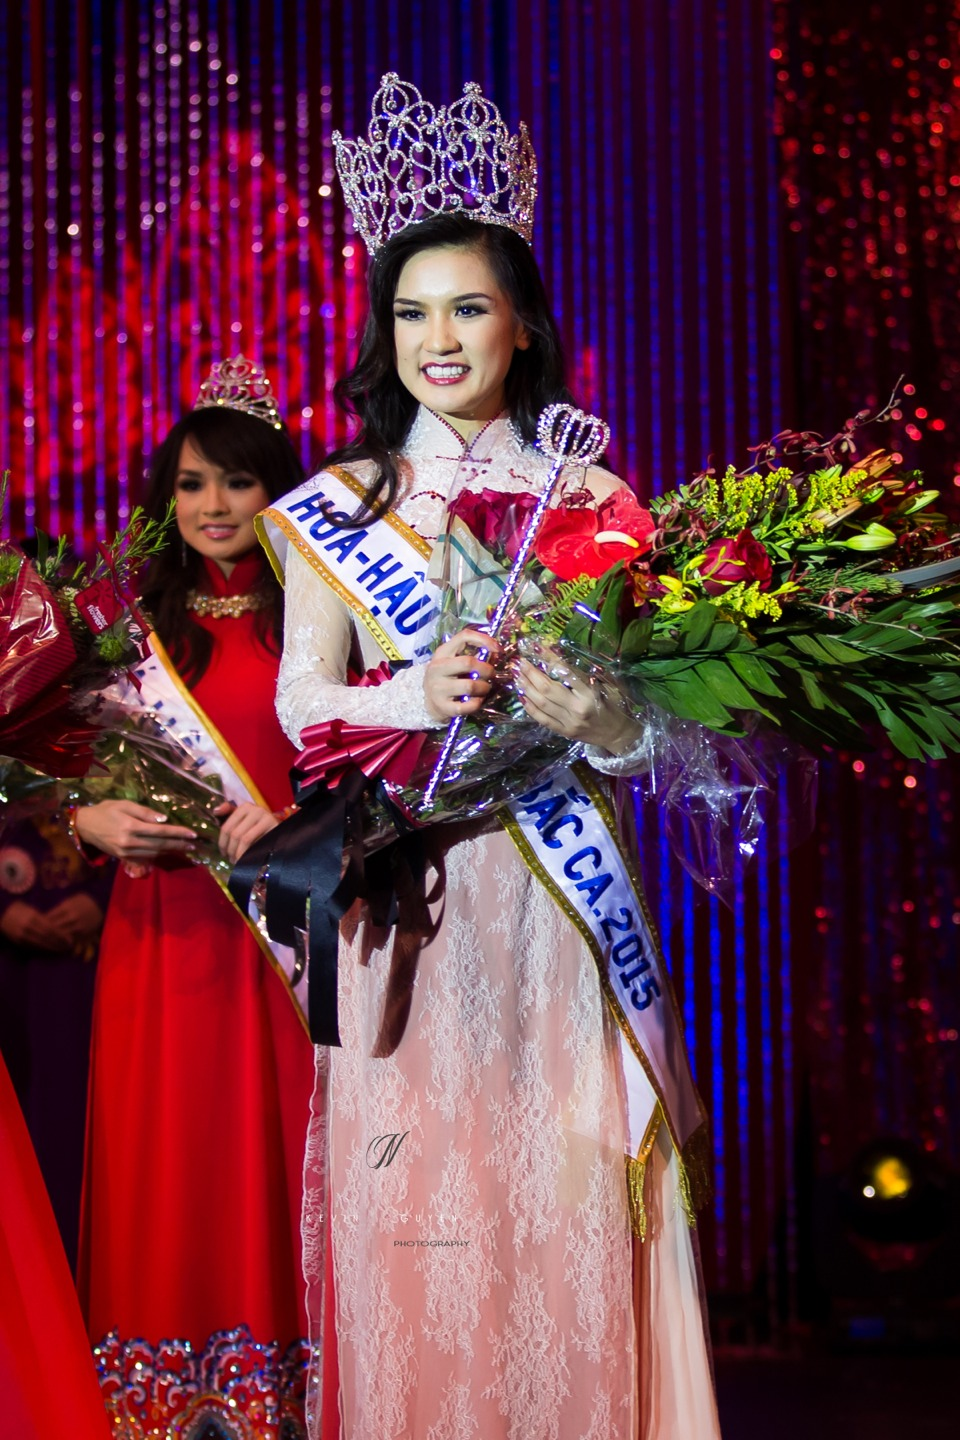 Pageant Day 2015 - Miss Vietnam of Northern California Pageant | Hoa Hậu Áo Dài Bắc Cali - Image 268